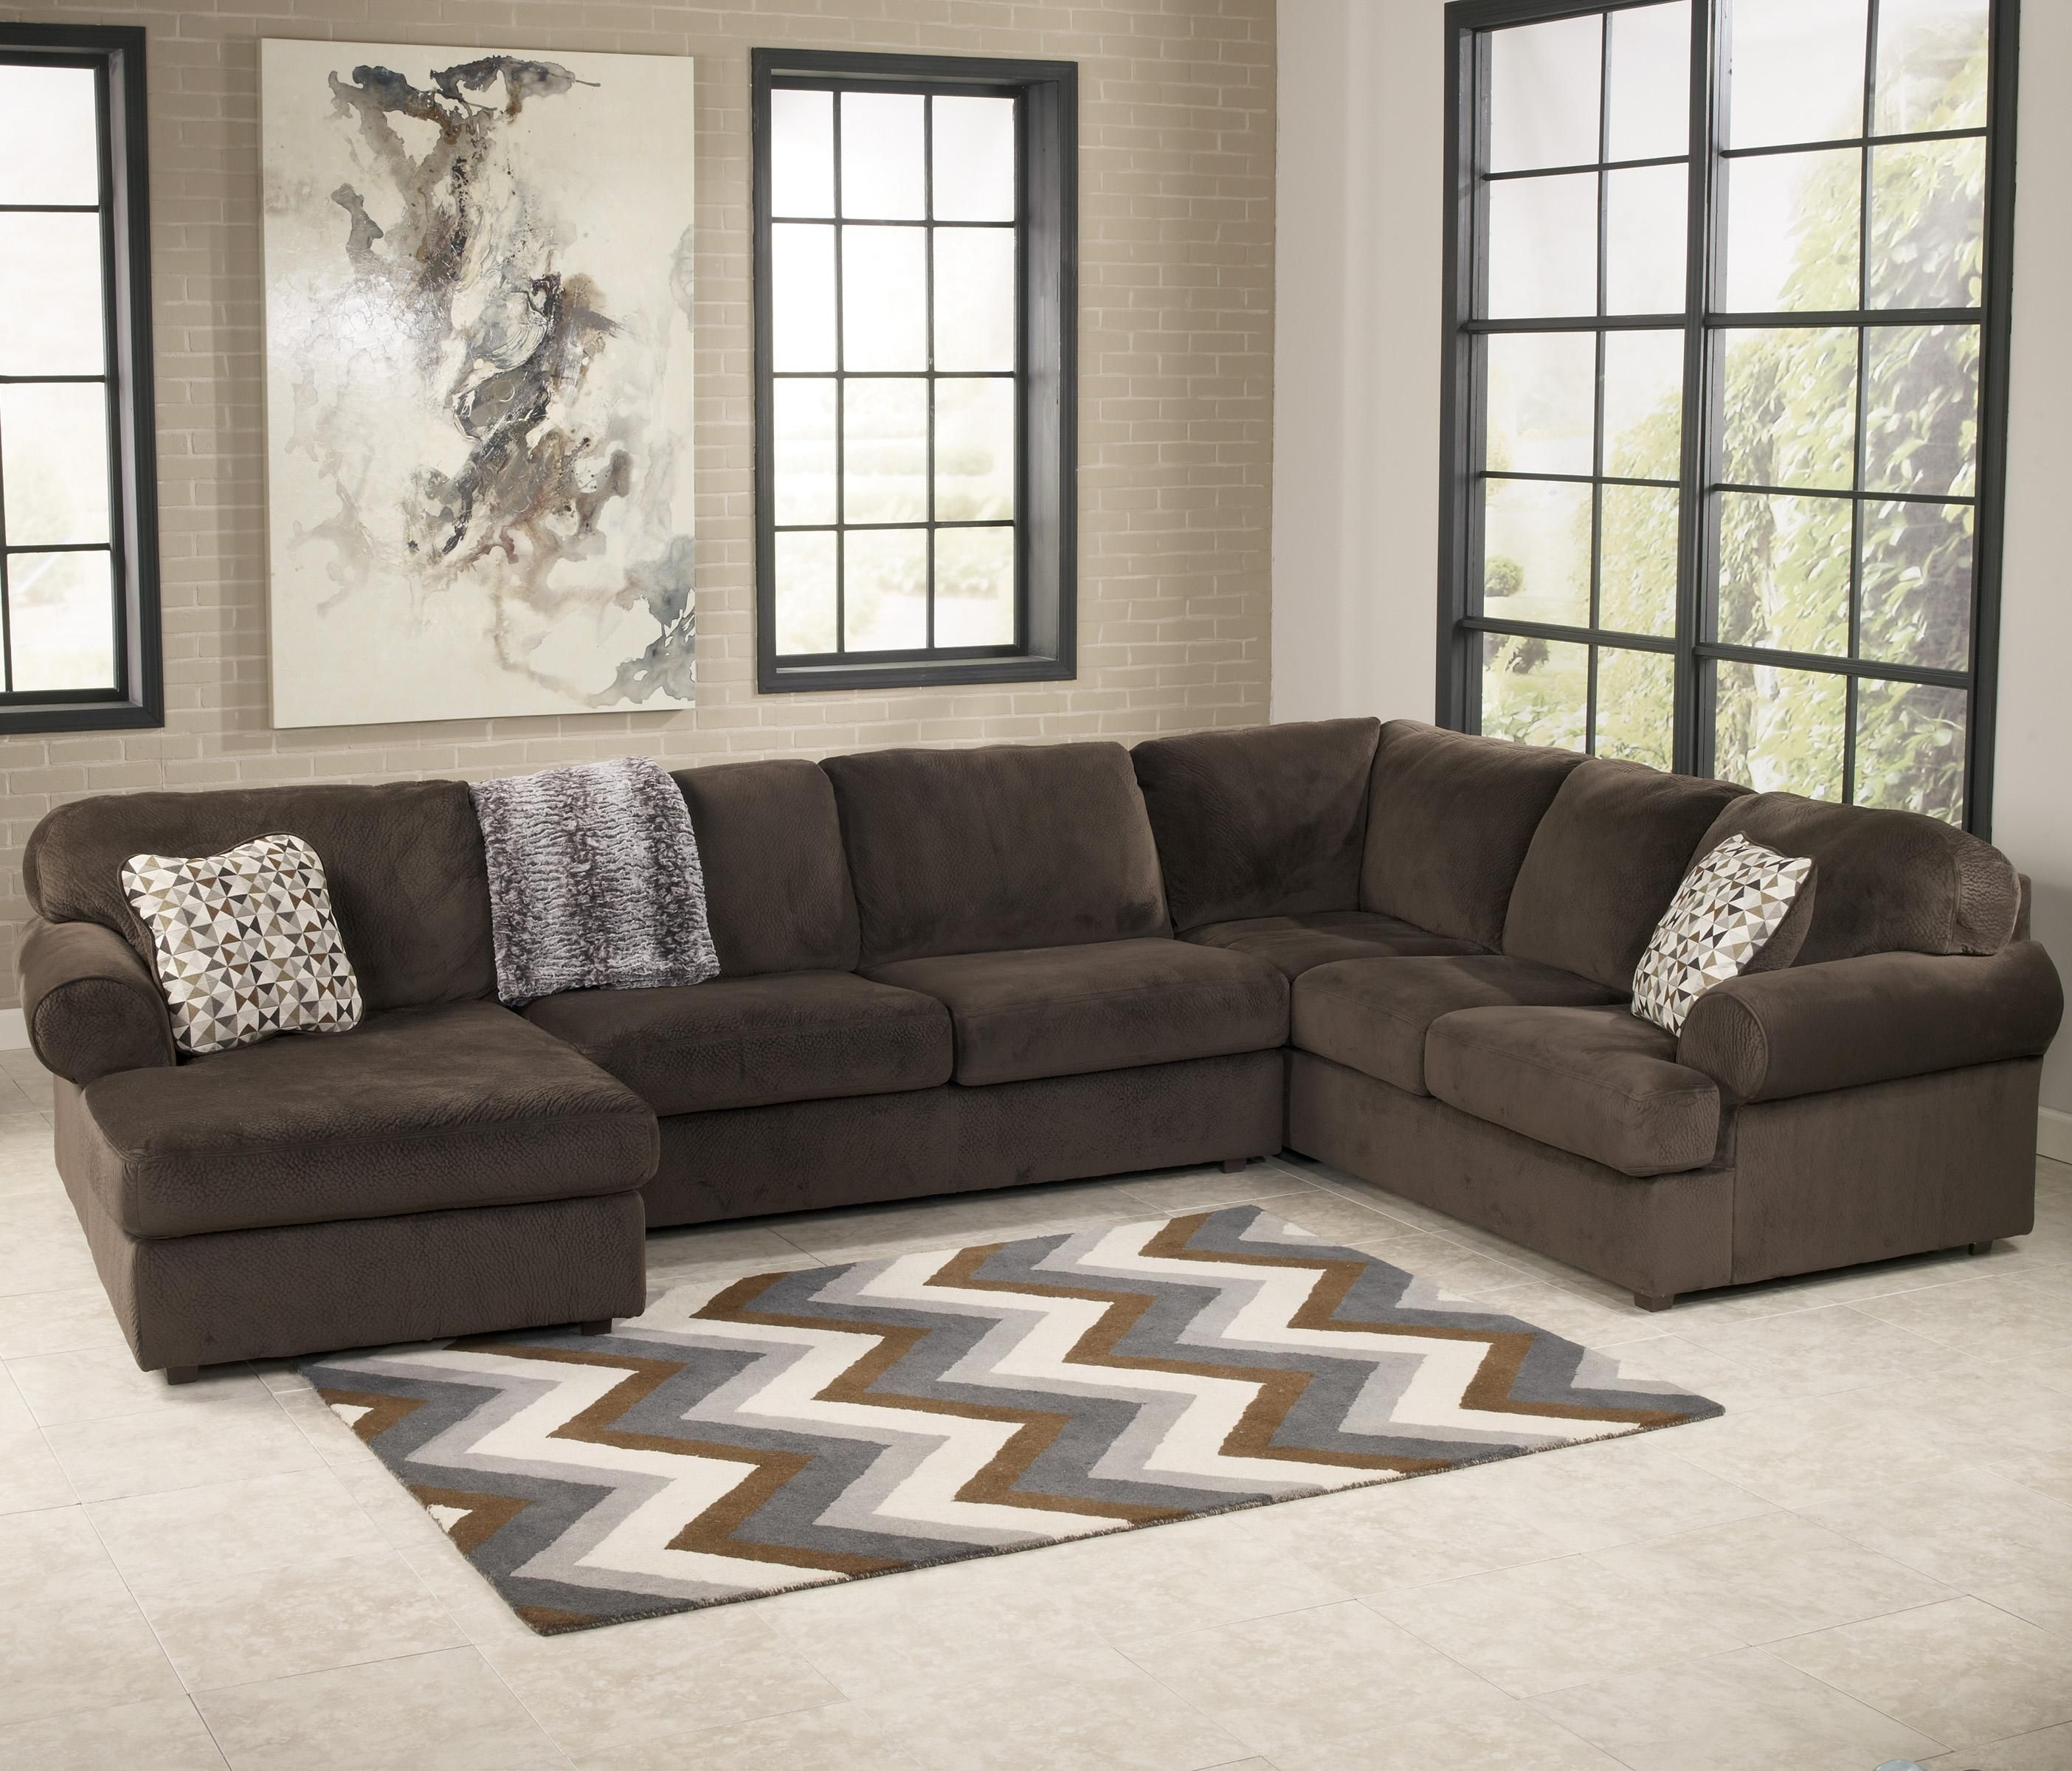 Jessa Place - Chocolate Casual Sectional Sofa With Left Chaise inside Jackson Ms Sectional Sofas